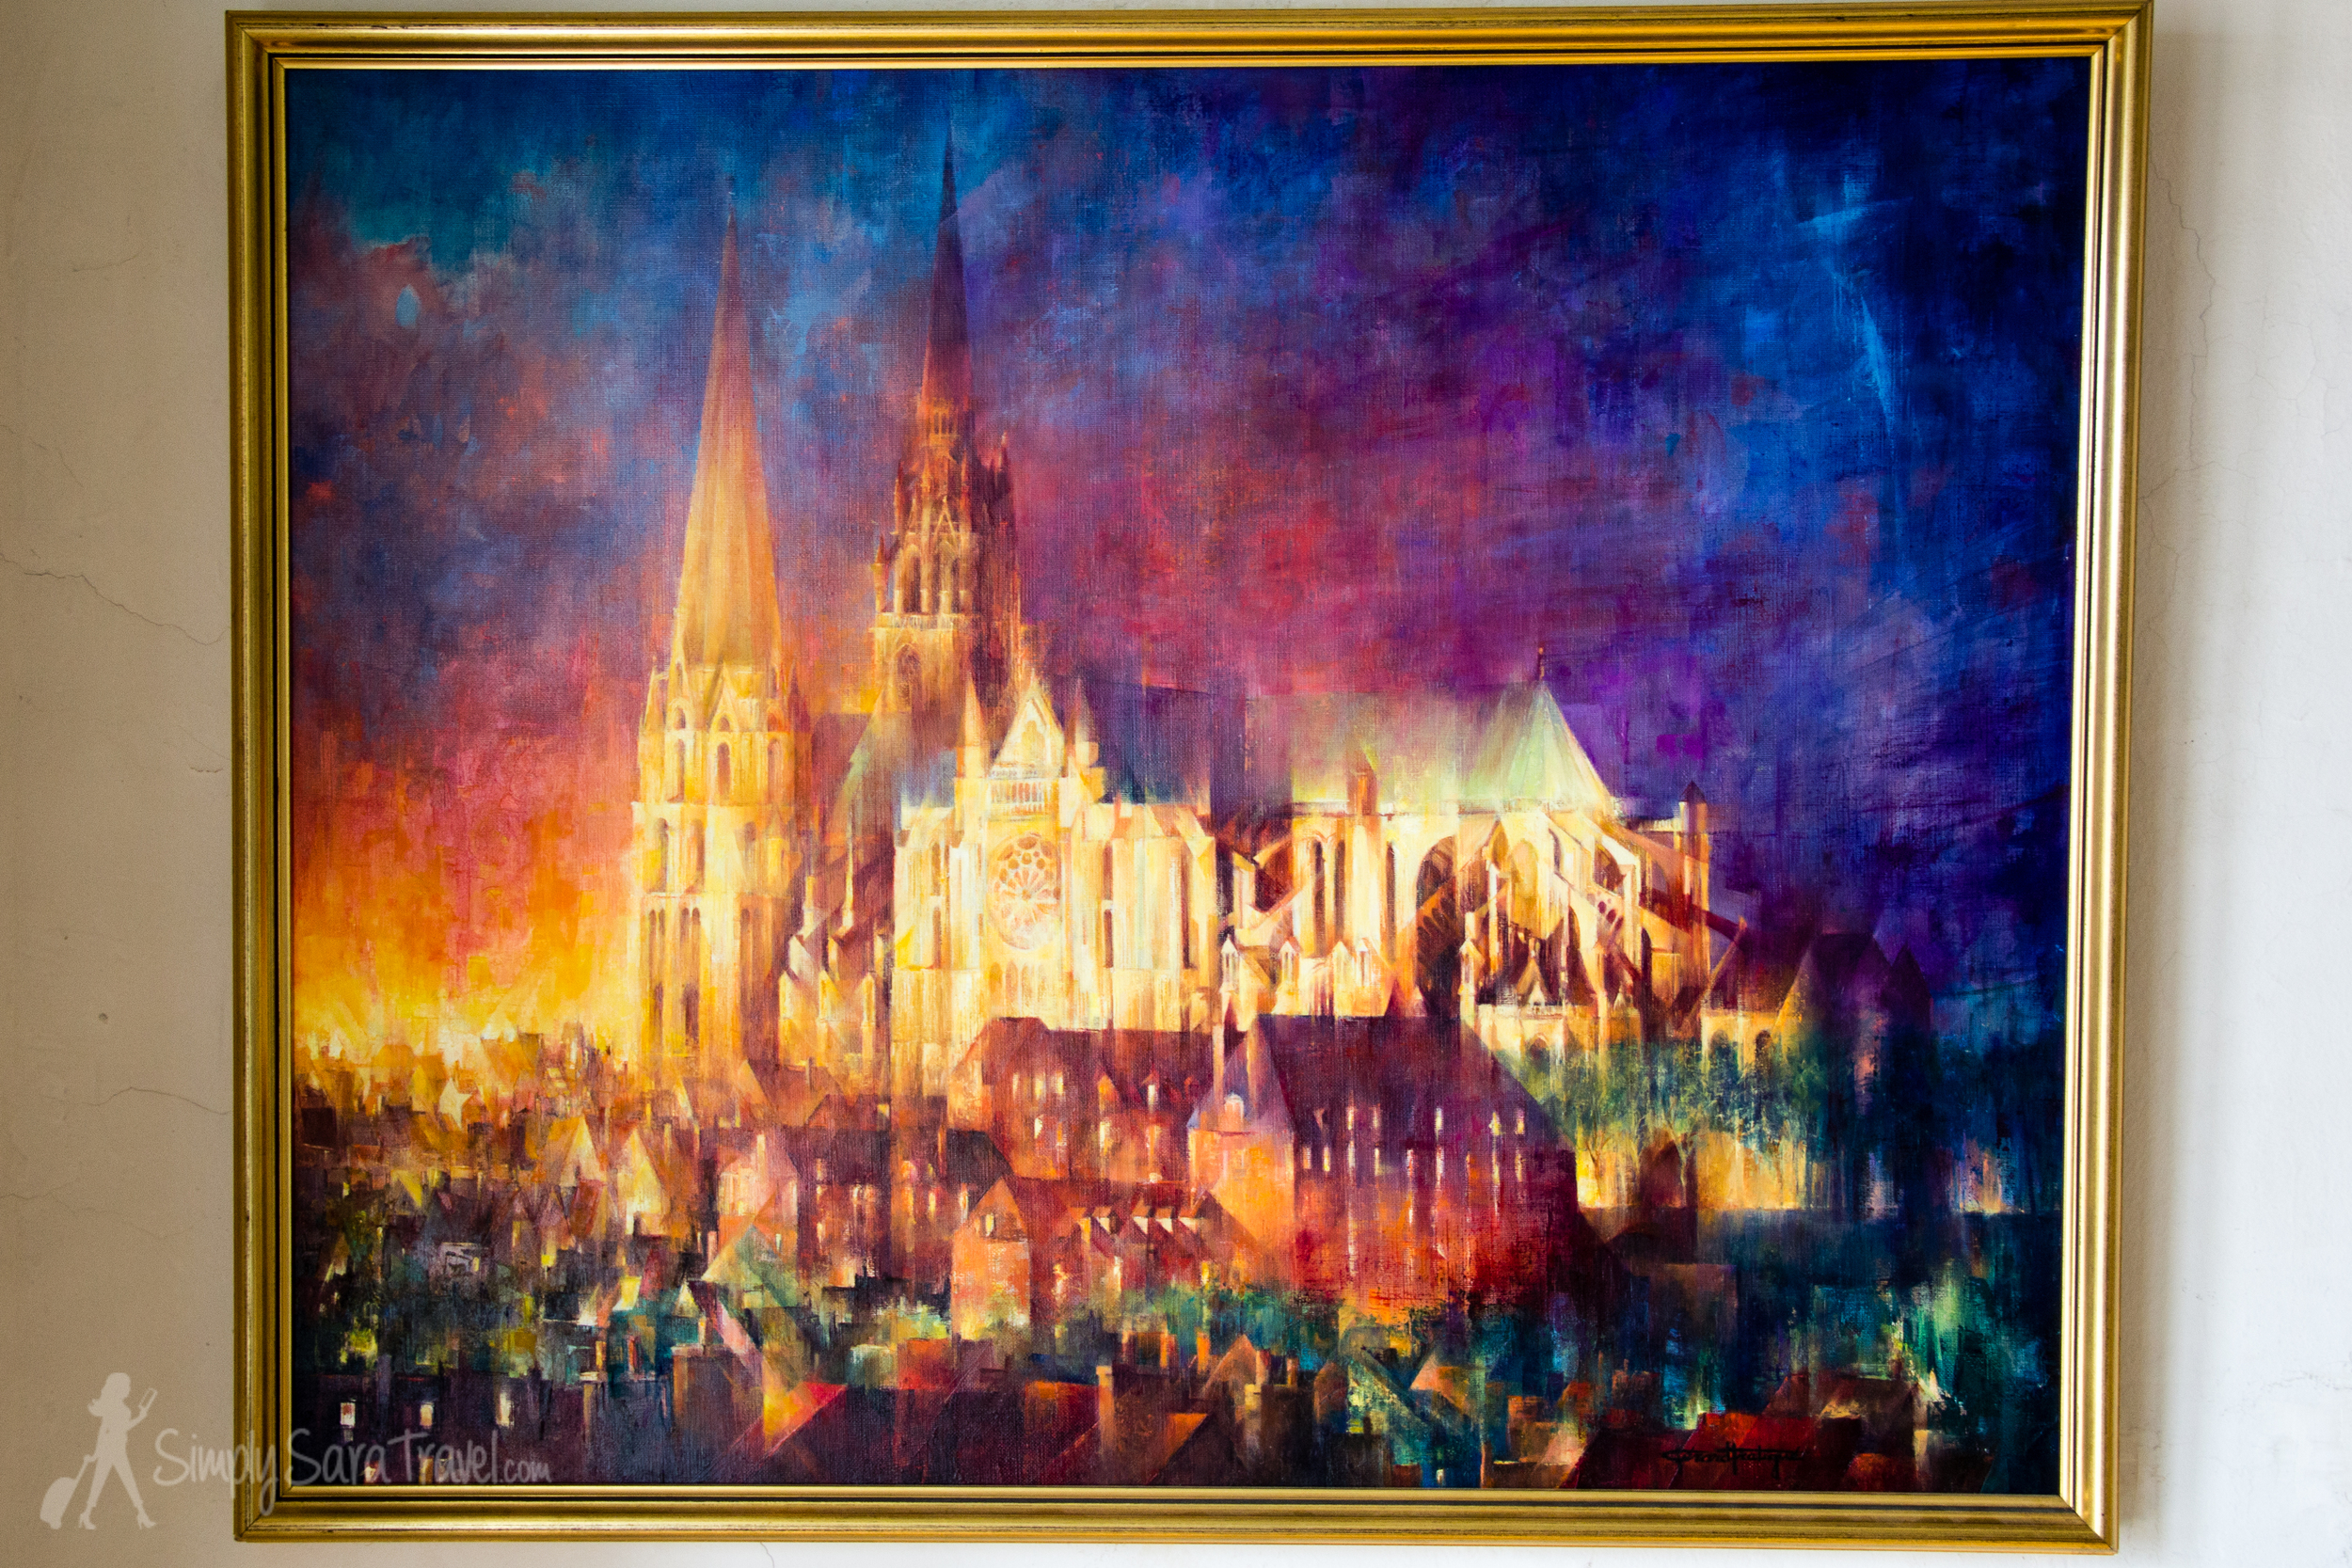 Painting of Chartres Cathedral at theMusée des Beaux-Arts